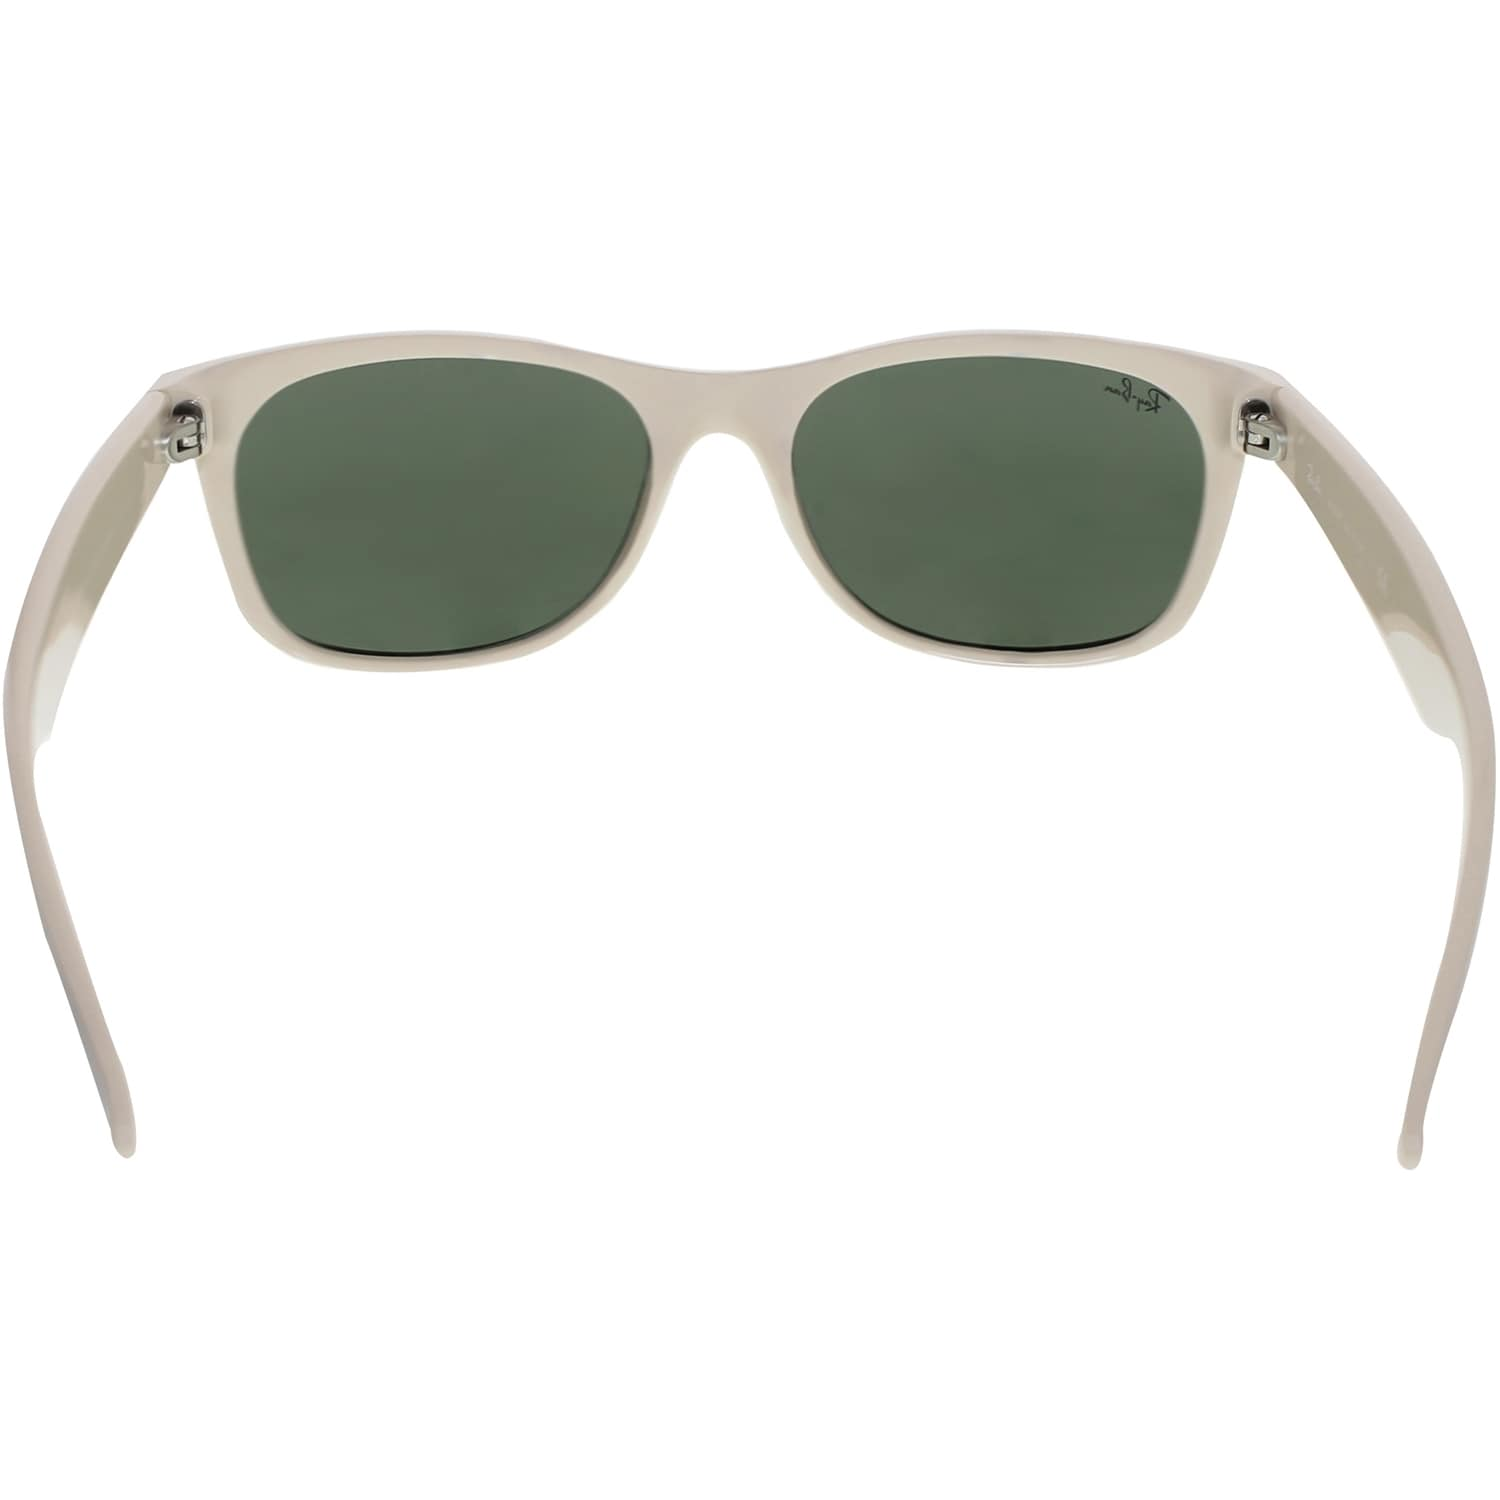 c424595c199 Shop Ray-Ban RB2132 875 New Wayfarer Color Mix Black Light Brown Frame  Green Classic 55mm Lens Sunglasses - Free Shipping Today - Overstock -  14442378